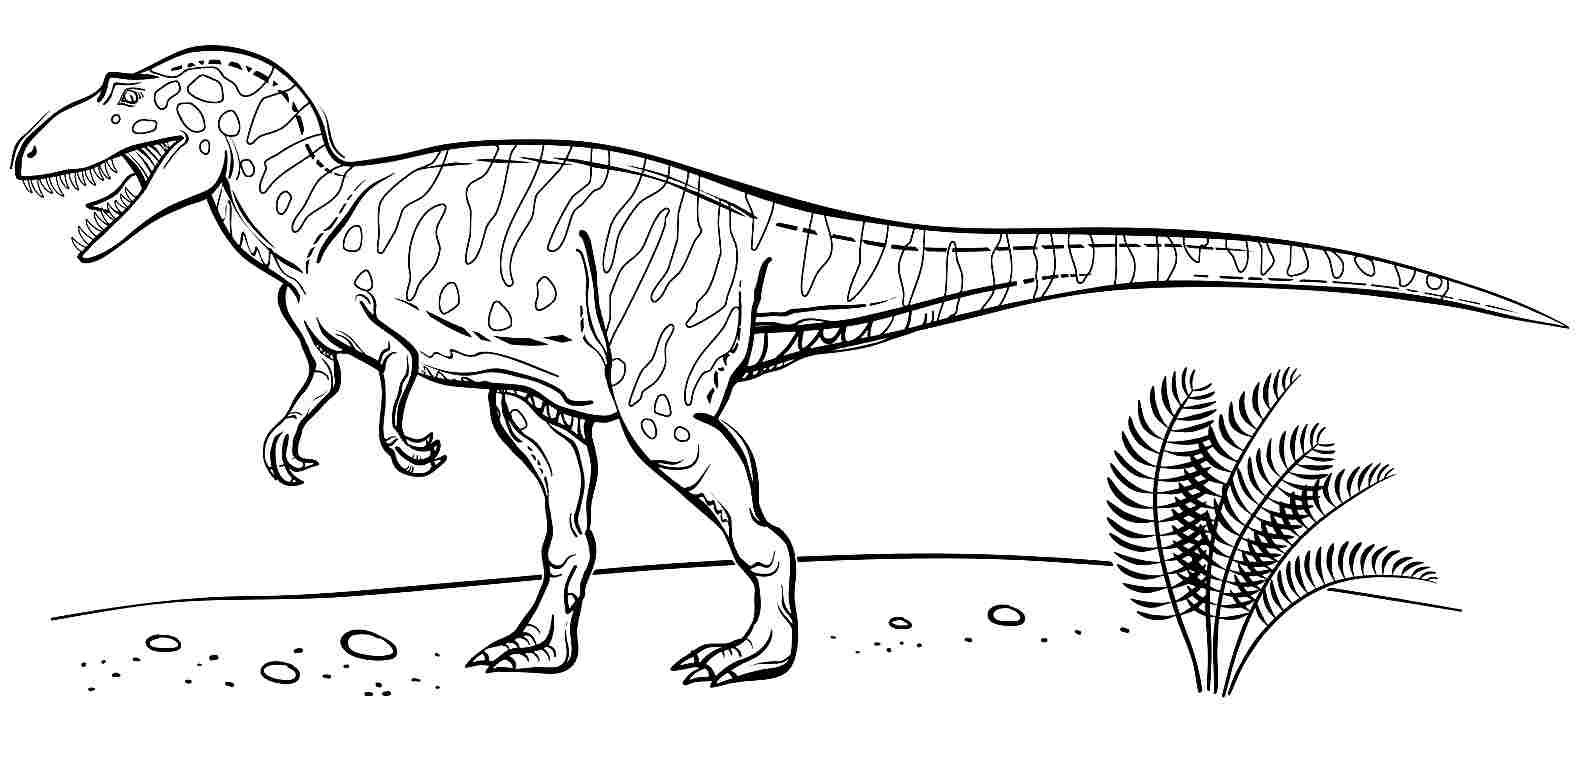 velociraptor coloring pages printable - Dinosaurs Coloring Pages Print